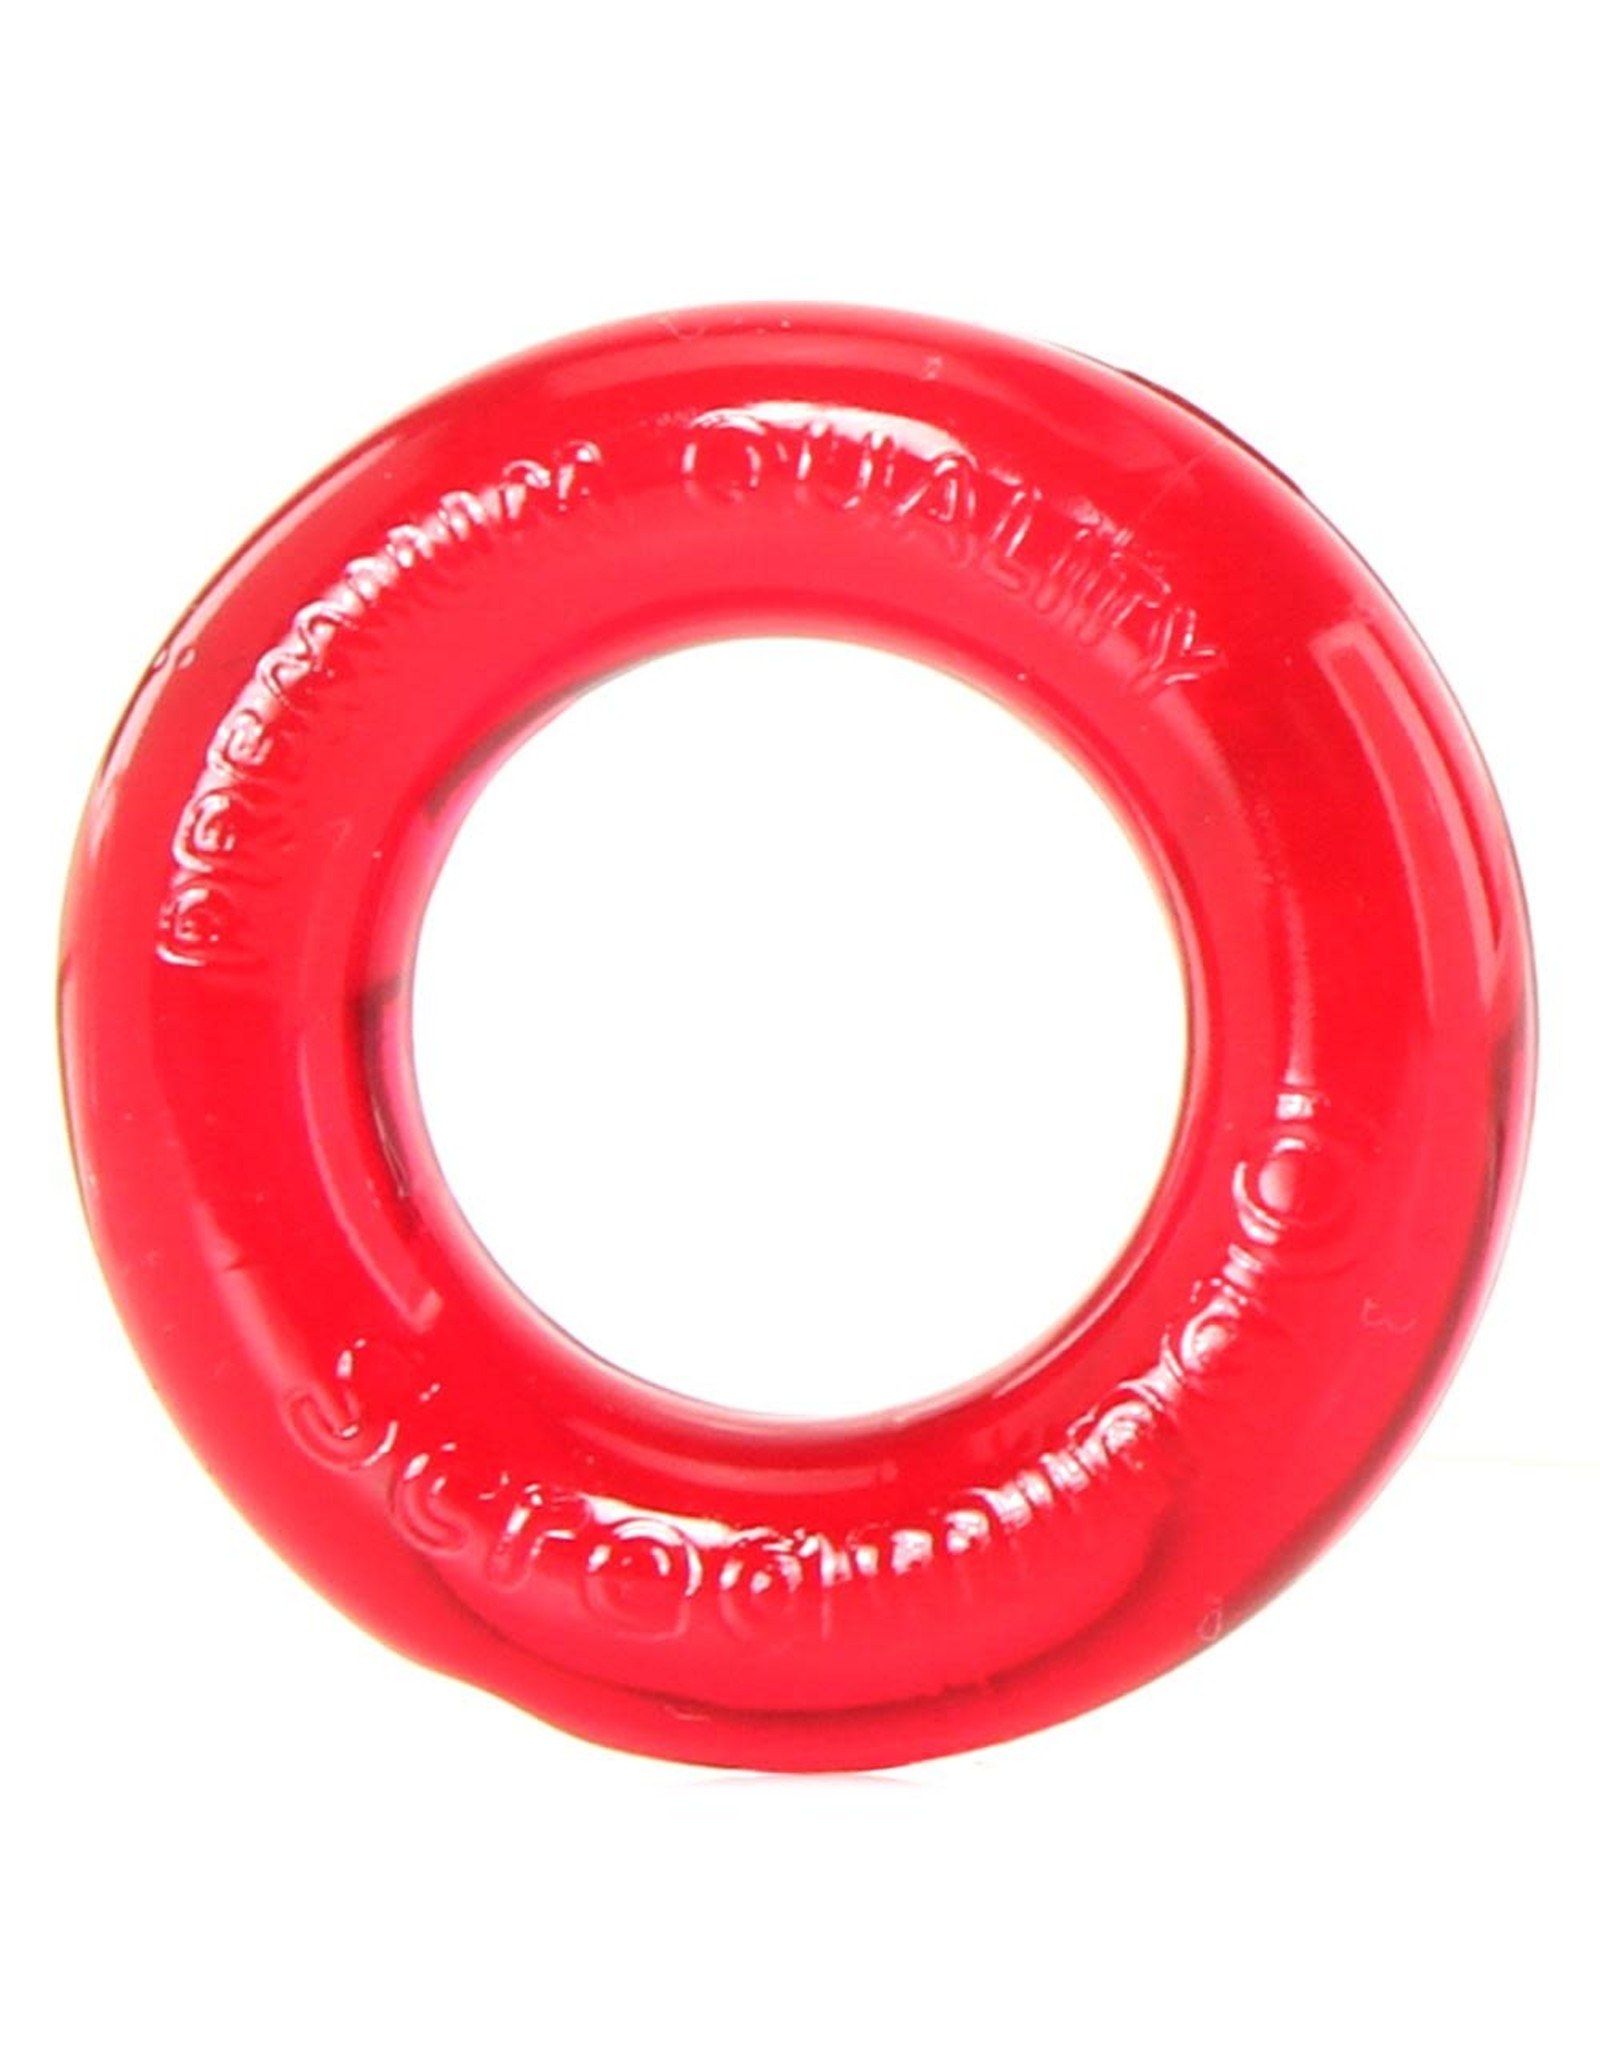 SCREAMING O - RING O'S SUPER STRETCHY C-RING - RED